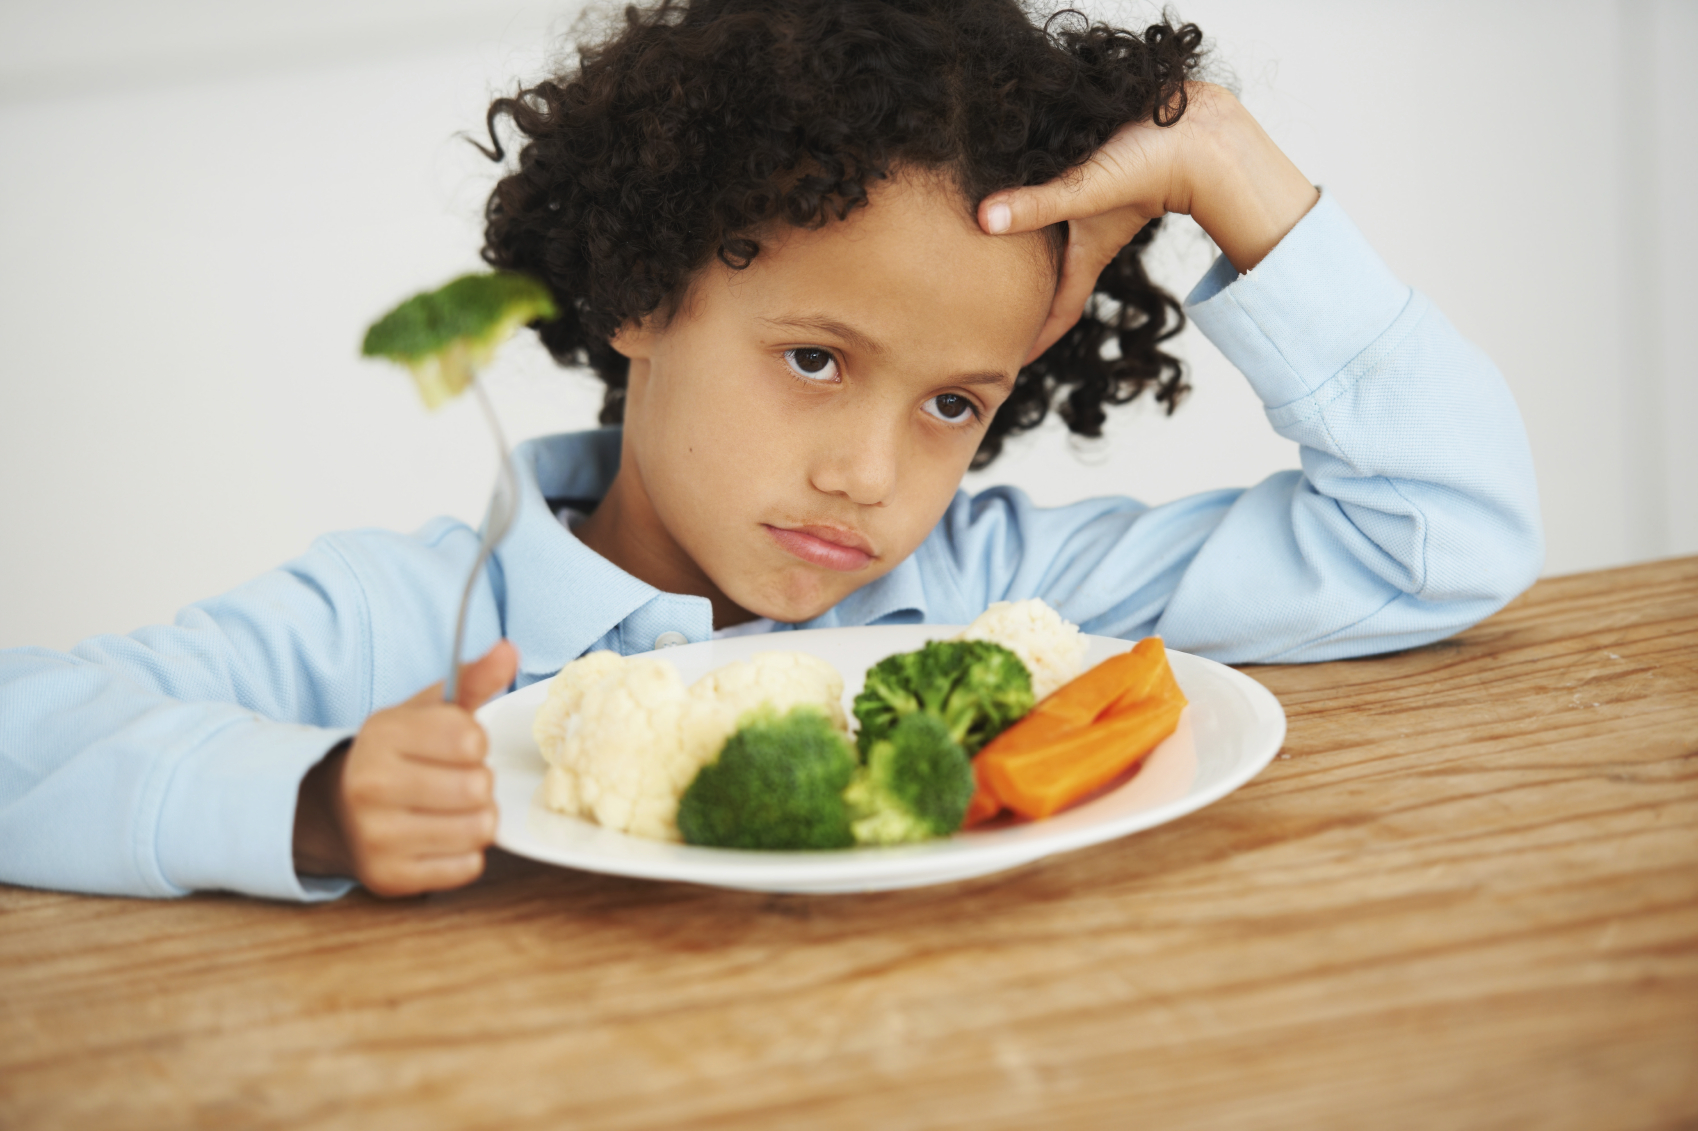 About 1 in 5 children is a picky eater, and a new study says these kids are more likely than their peers to suffer from psychological disorders. (Photo: rushedmommy.com)